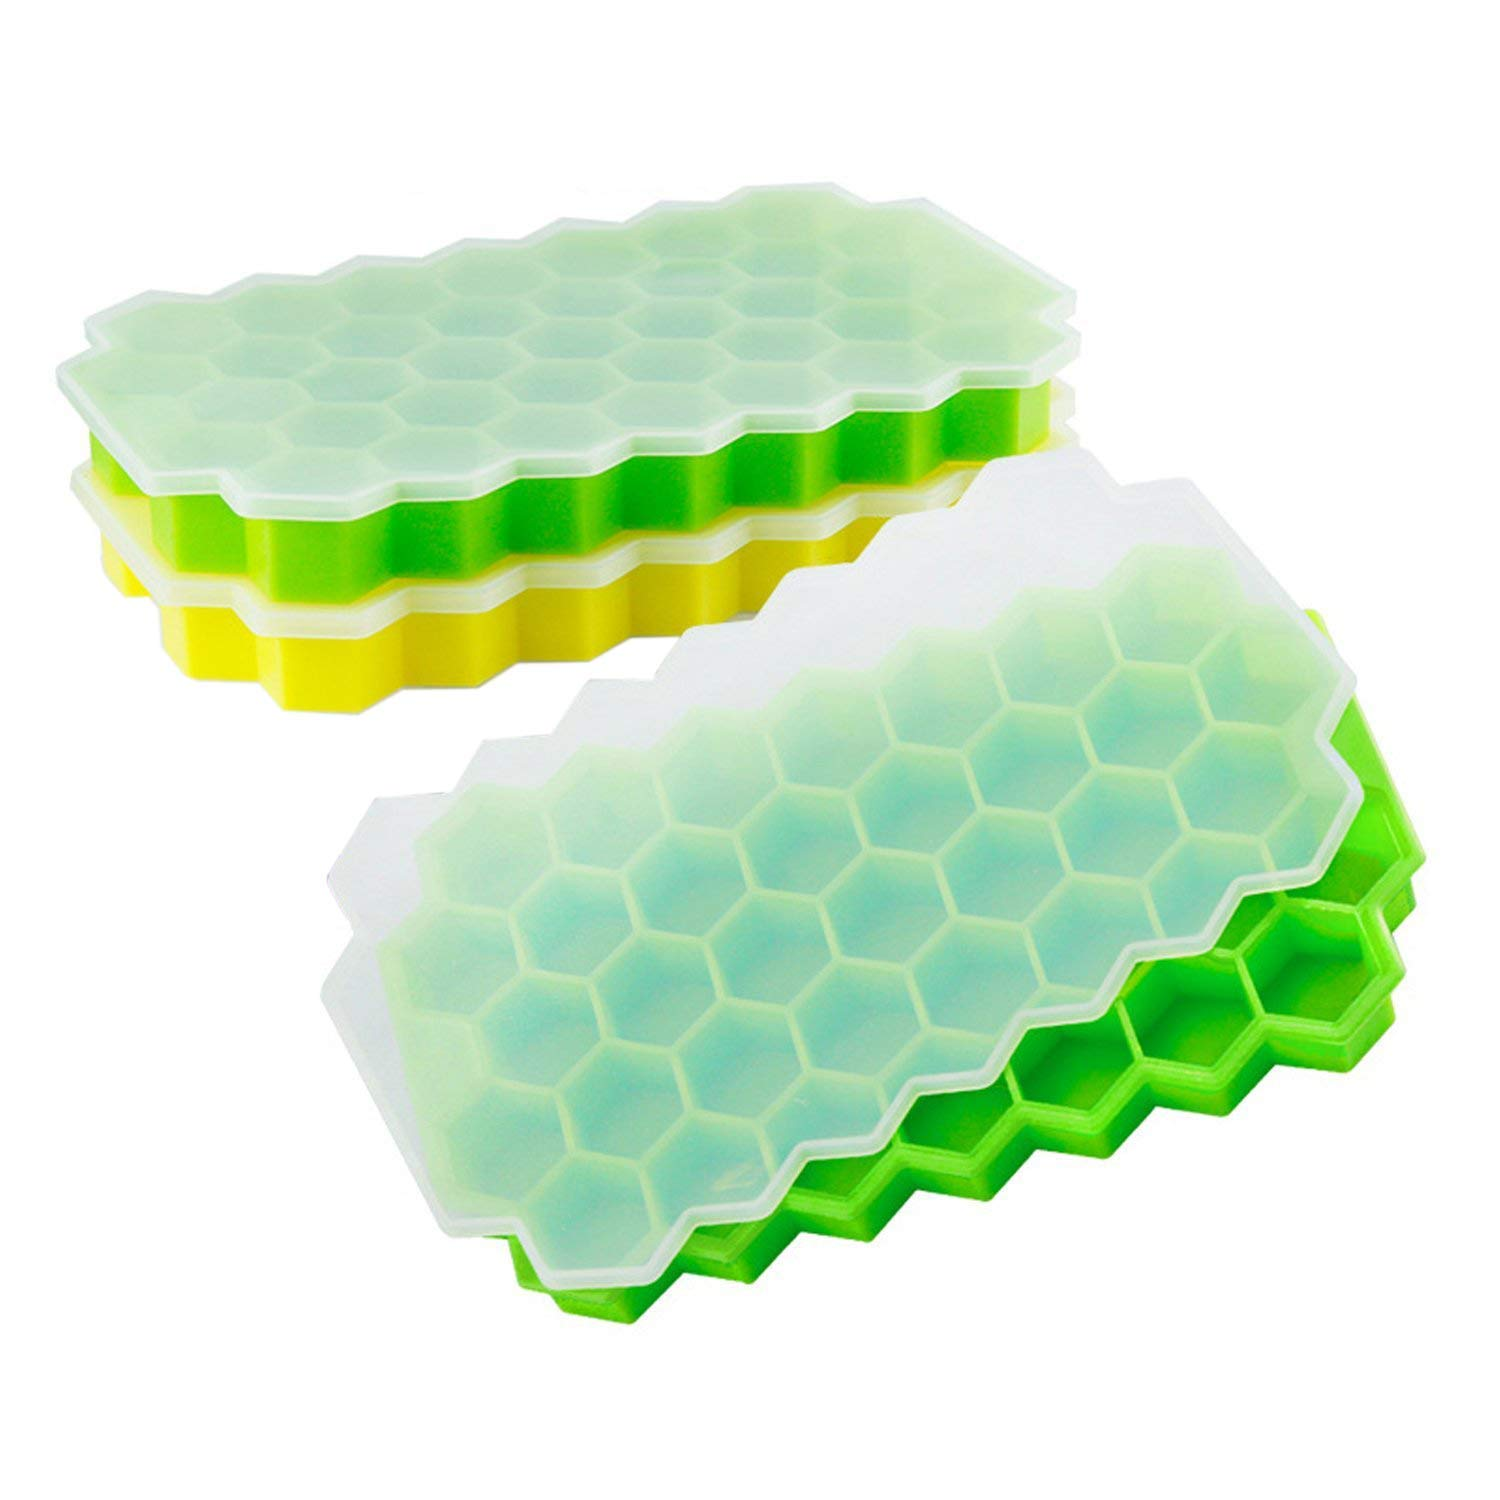 24-Ice Cubes LFver Ice Cube Trays 3 Pack ,Ice Trays Silicone with Lids,LFGB Certified and BPA Free,Stackable Flexible Safe Ice Cube Molds and Dishwasher Safe. With Cover